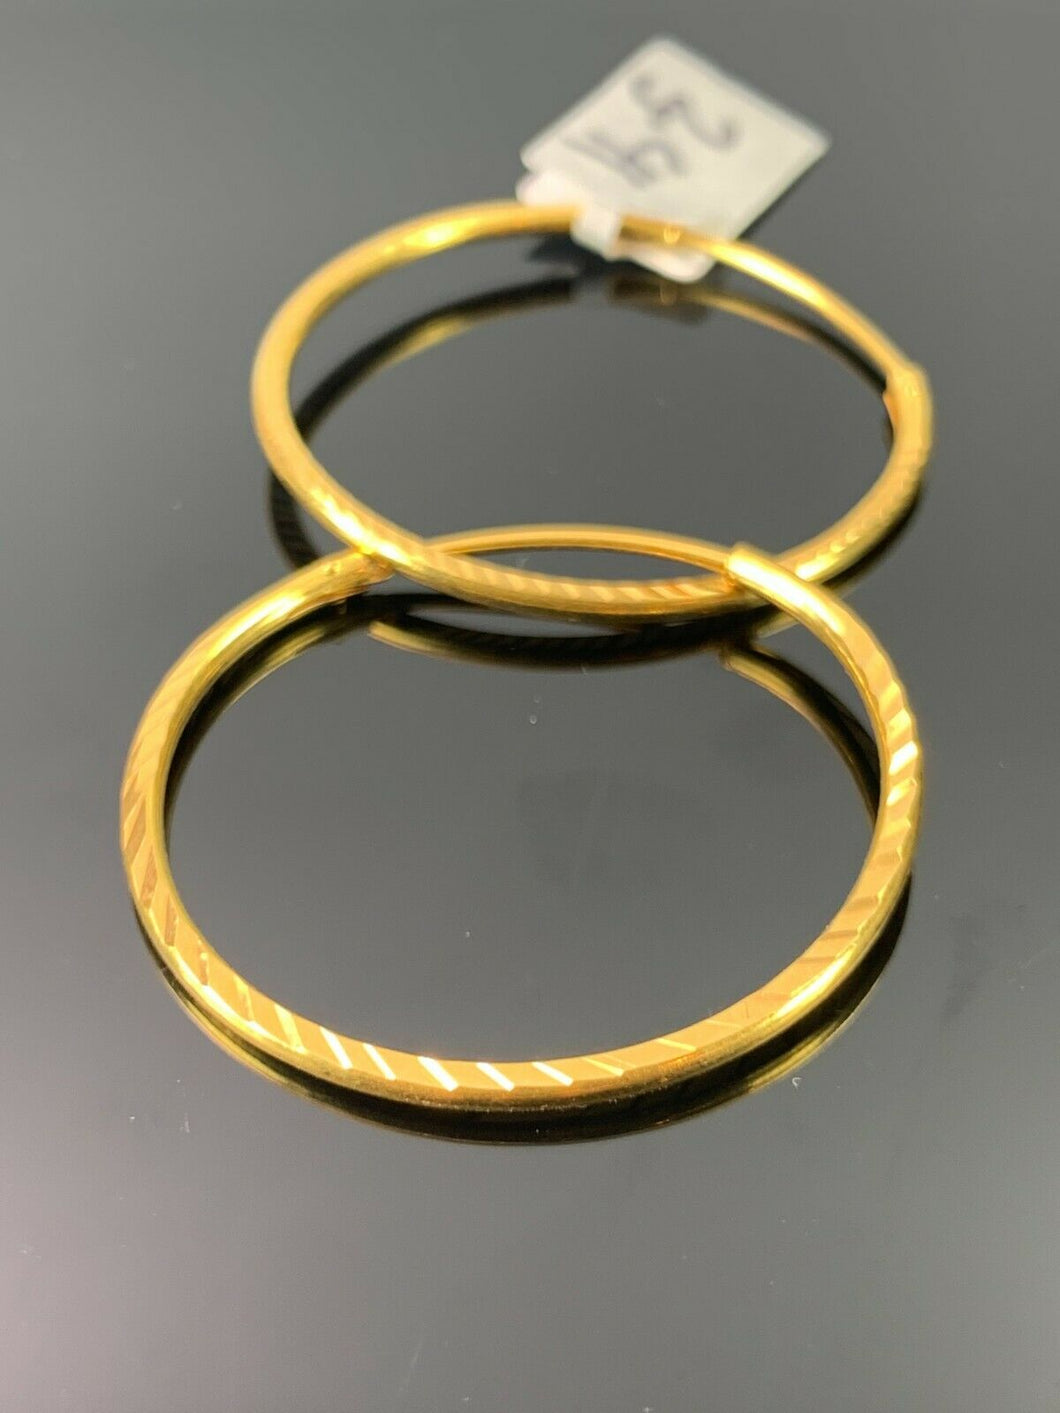 22k Earrings Solid Gold Ladies Jewelry Simple Hoops With Diamond Cutting E8166